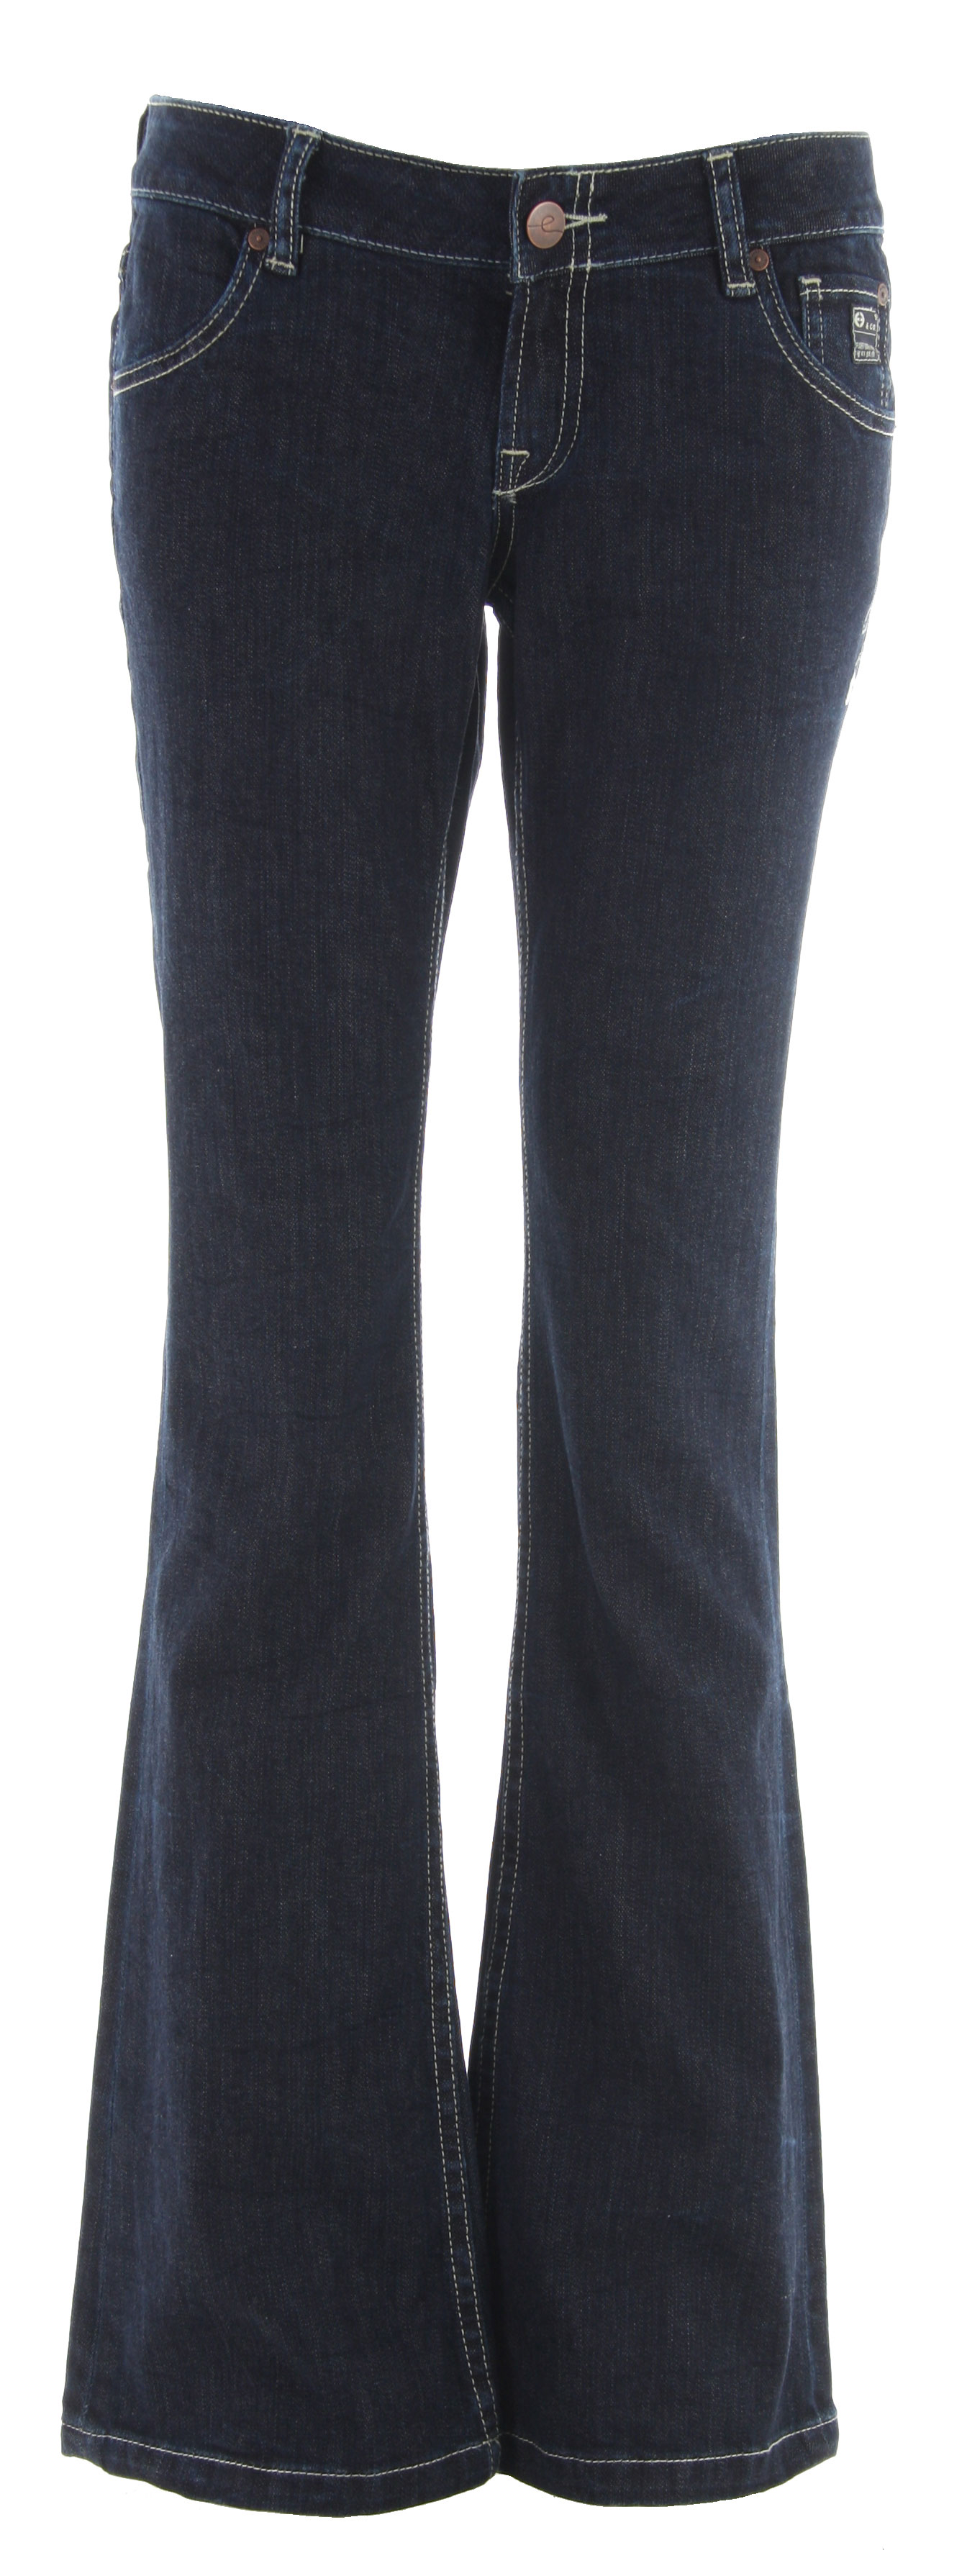 Planet Earth Boot Cut Rinse Wash Jean Indigo - $23.95